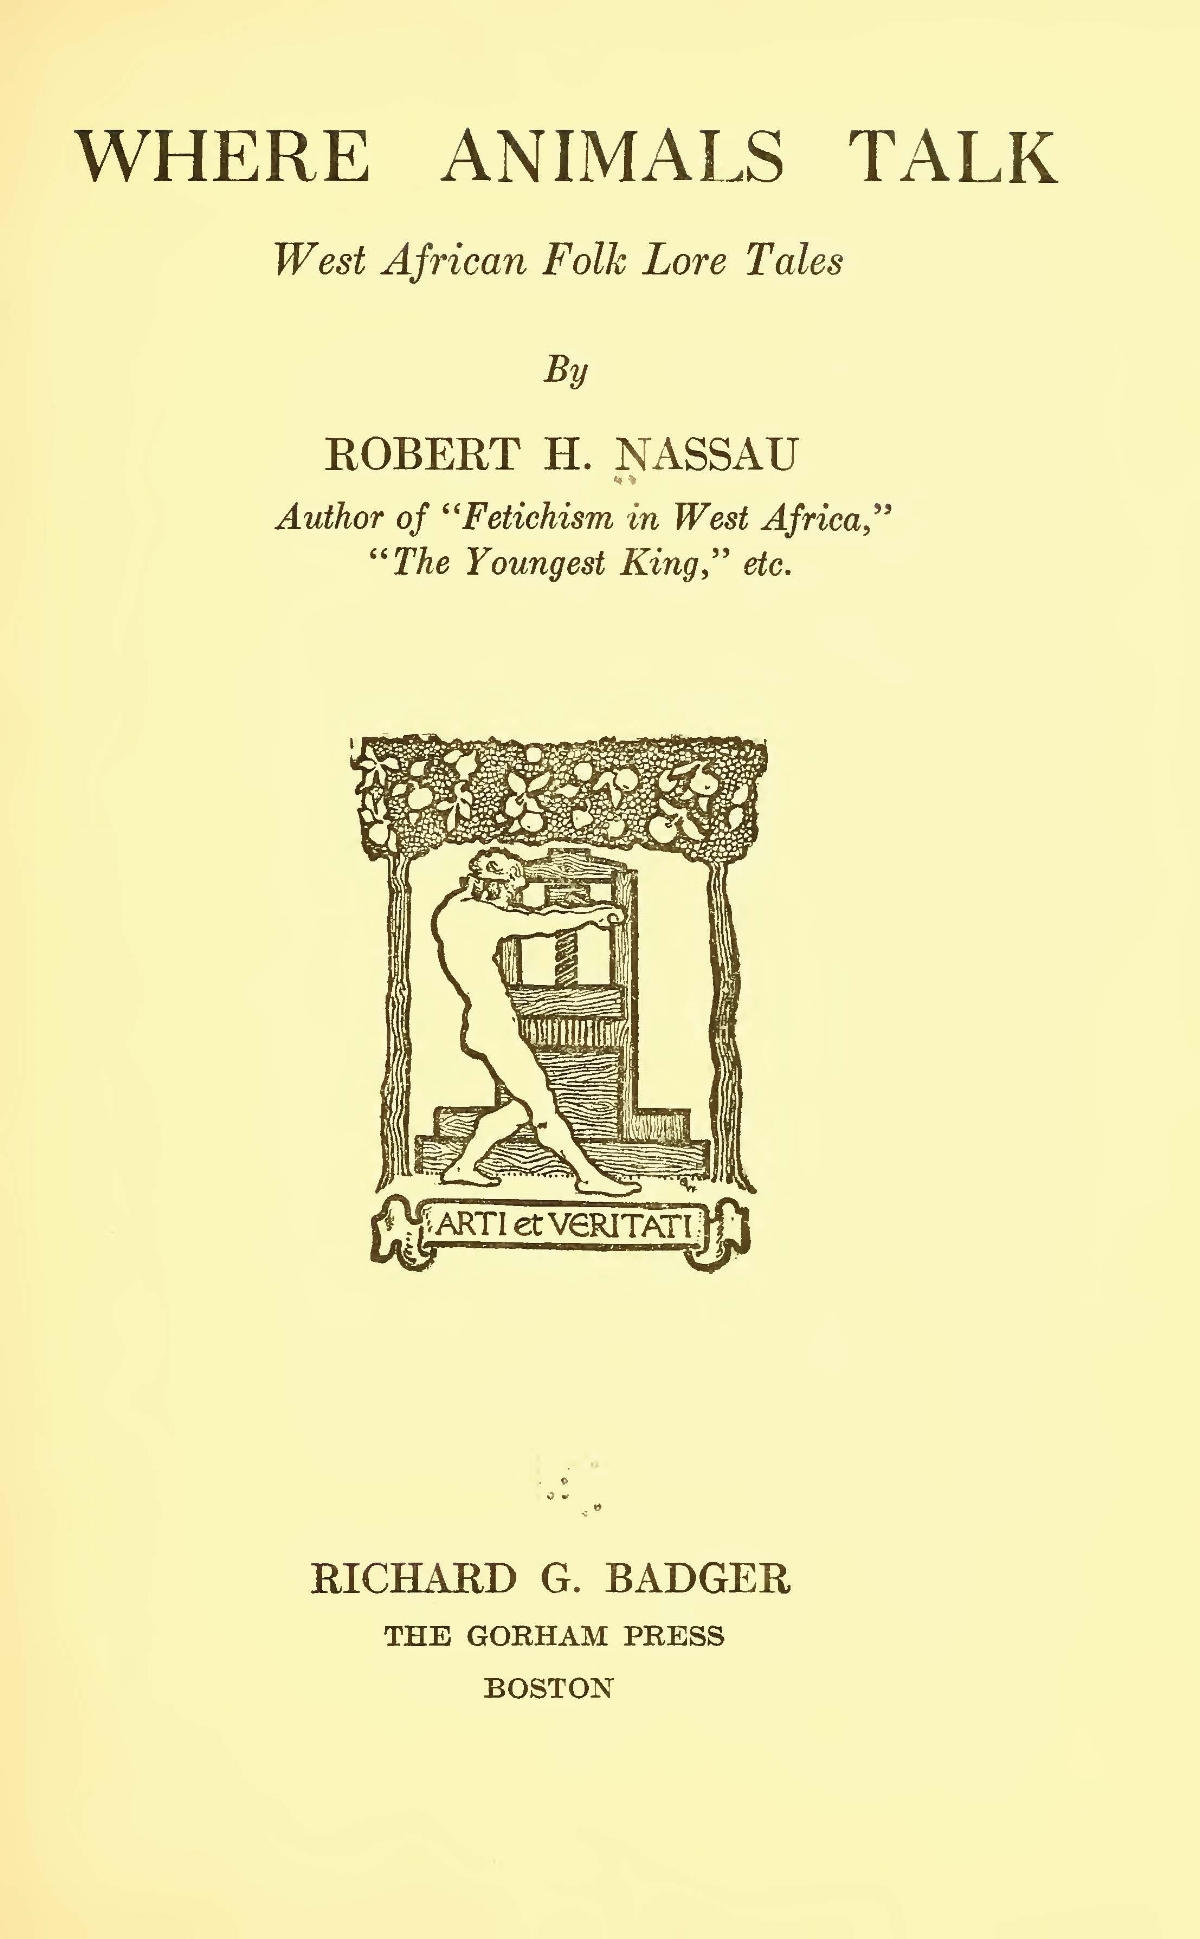 Nassau, Robert Hamill, Where Animals Talk Title Page.jpg